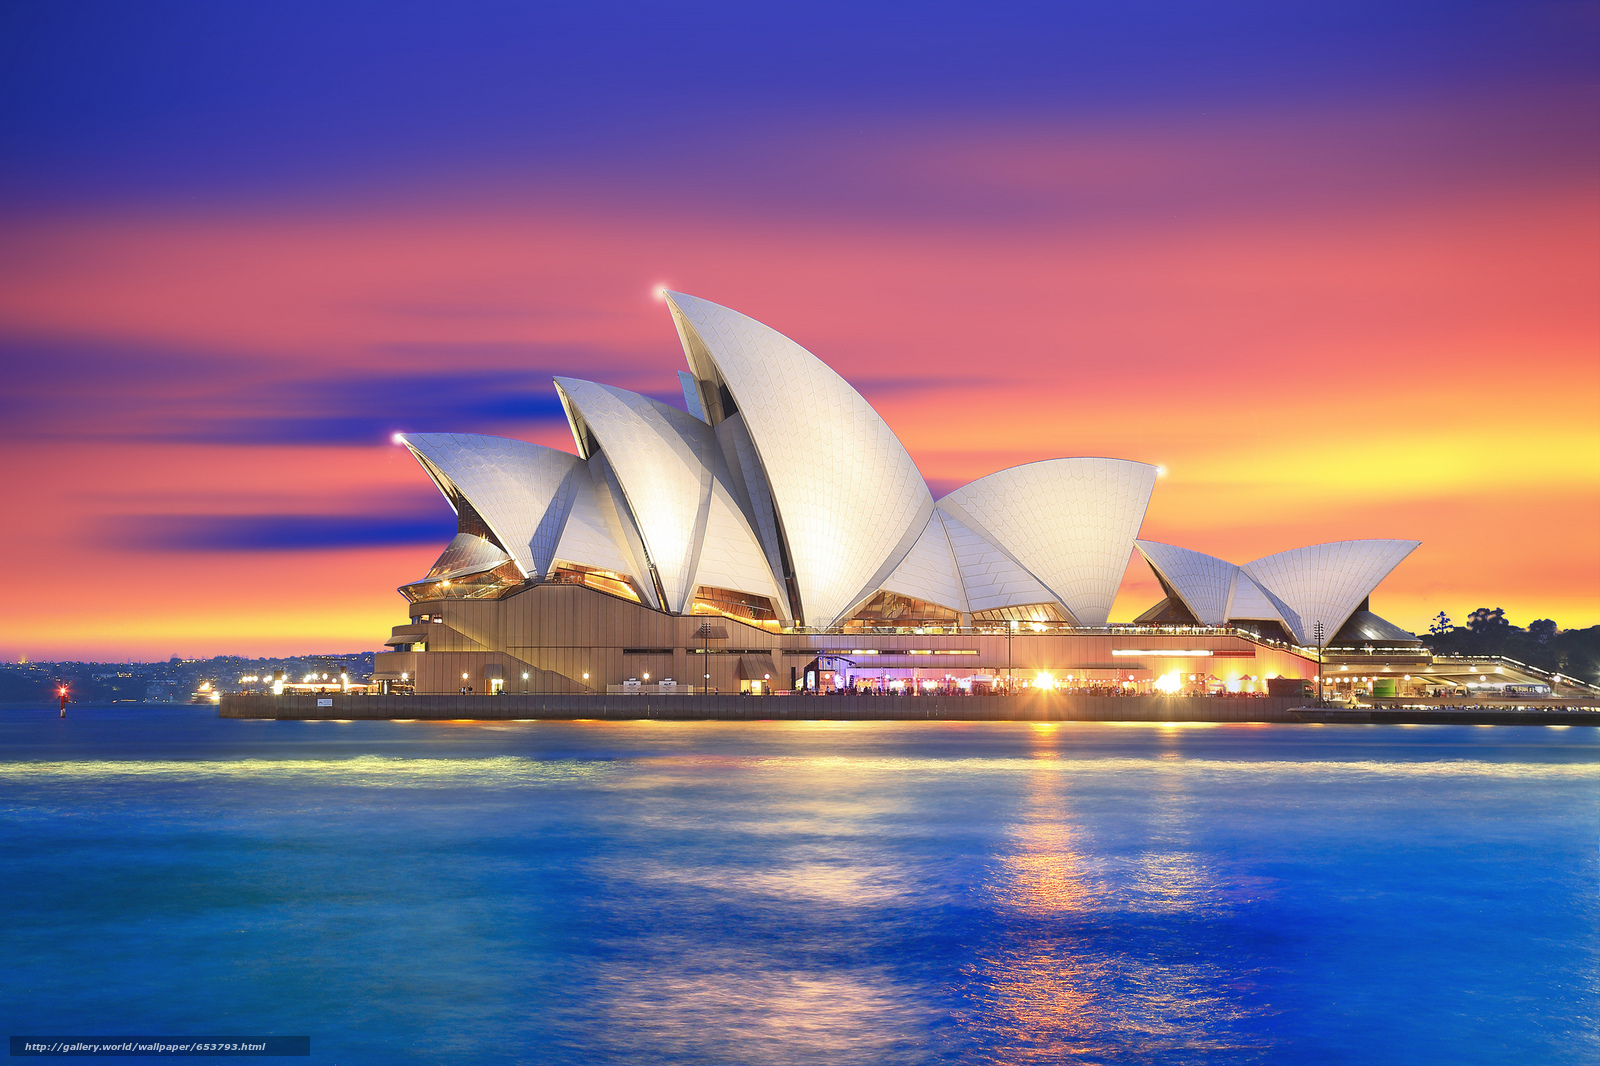 Find upcoming events, concerts, shows and experiences at Sydney Opera House. TIP: Use the filter button or